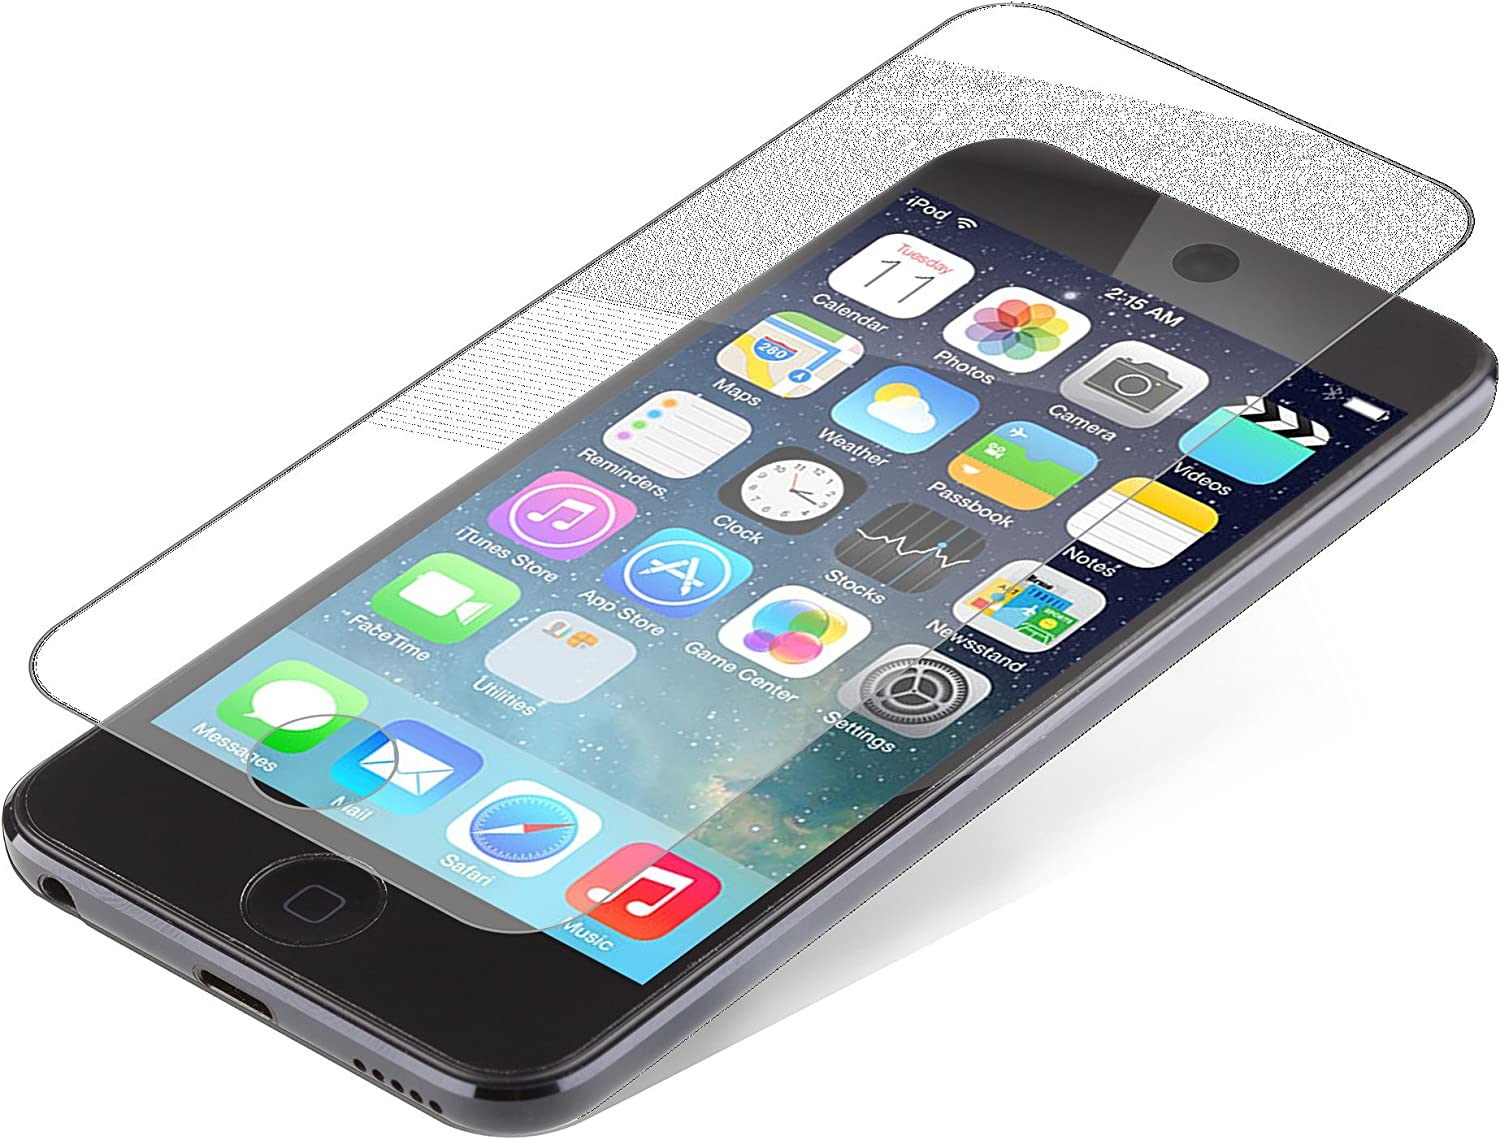 ZAGG InvisibleShield Screen Protector for iPod Touch 5th Generation